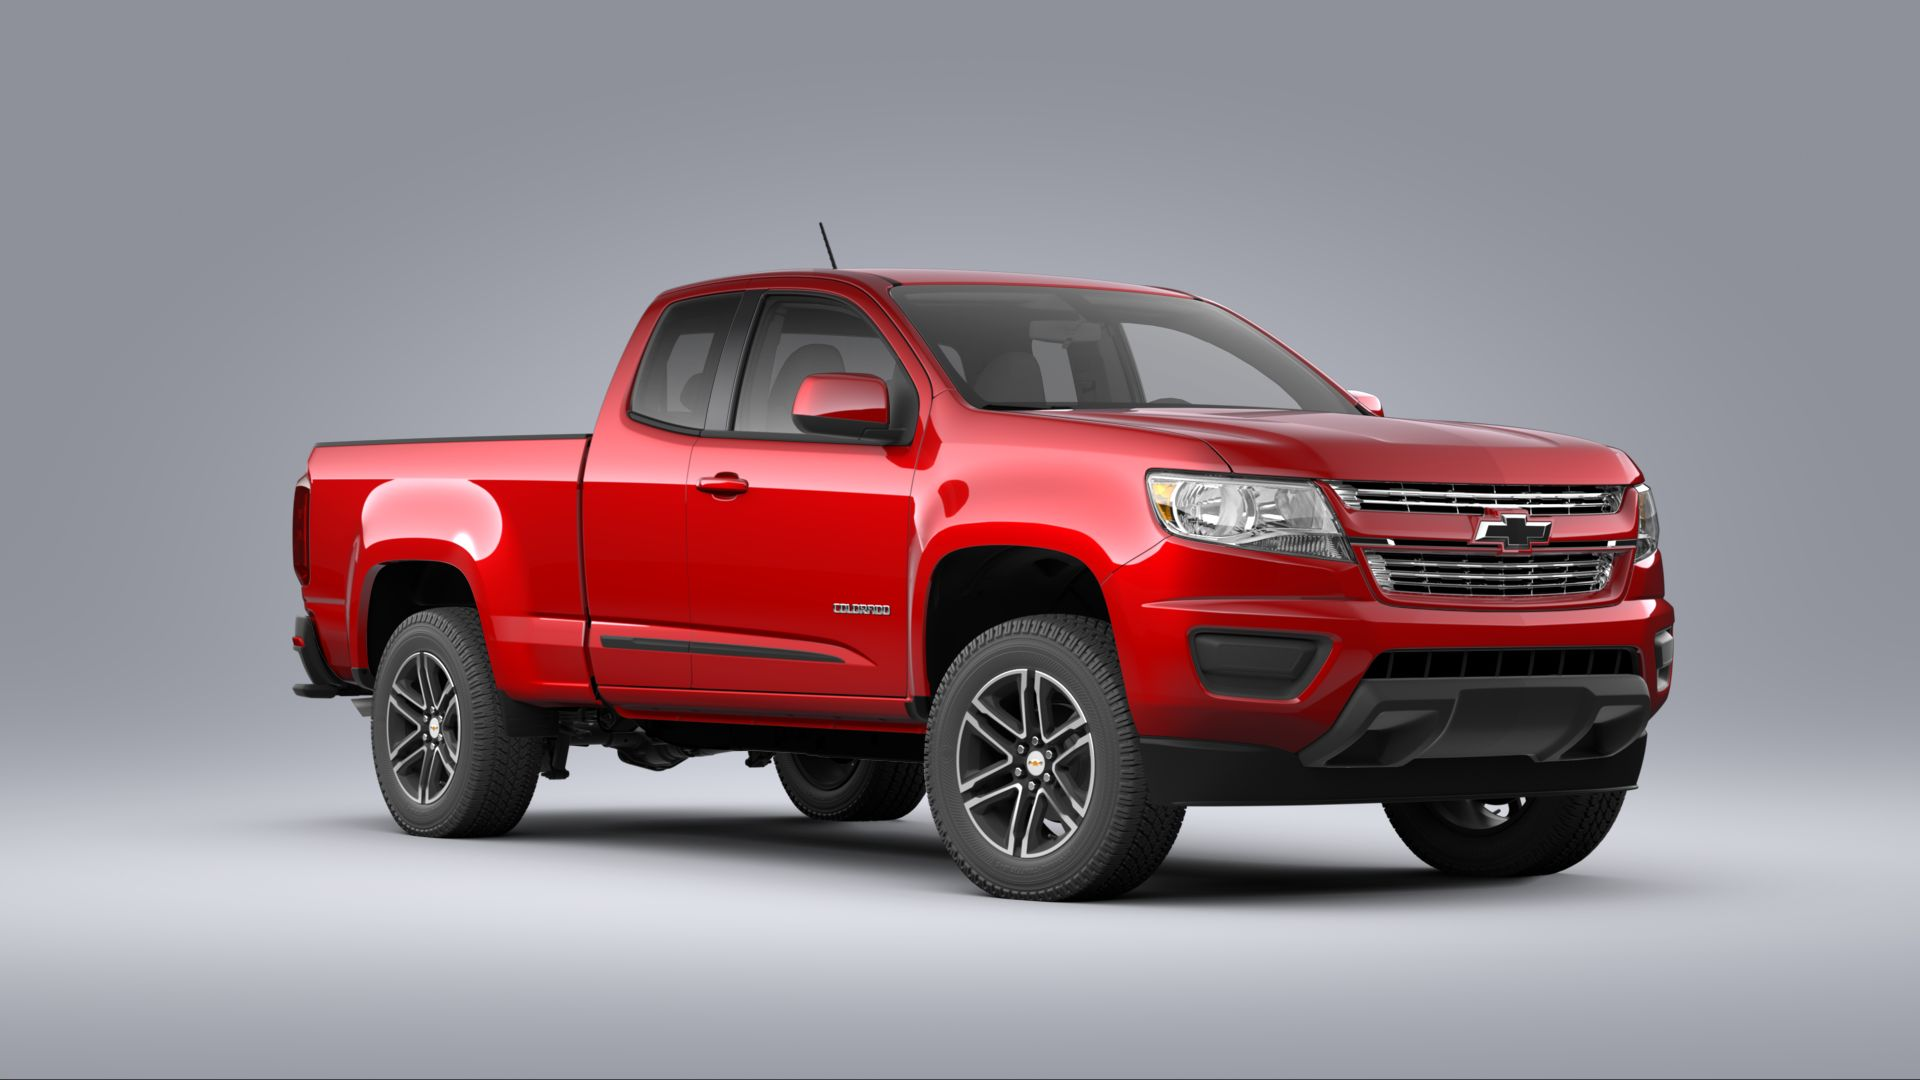 2020 Chevrolet Colorado WT Truck